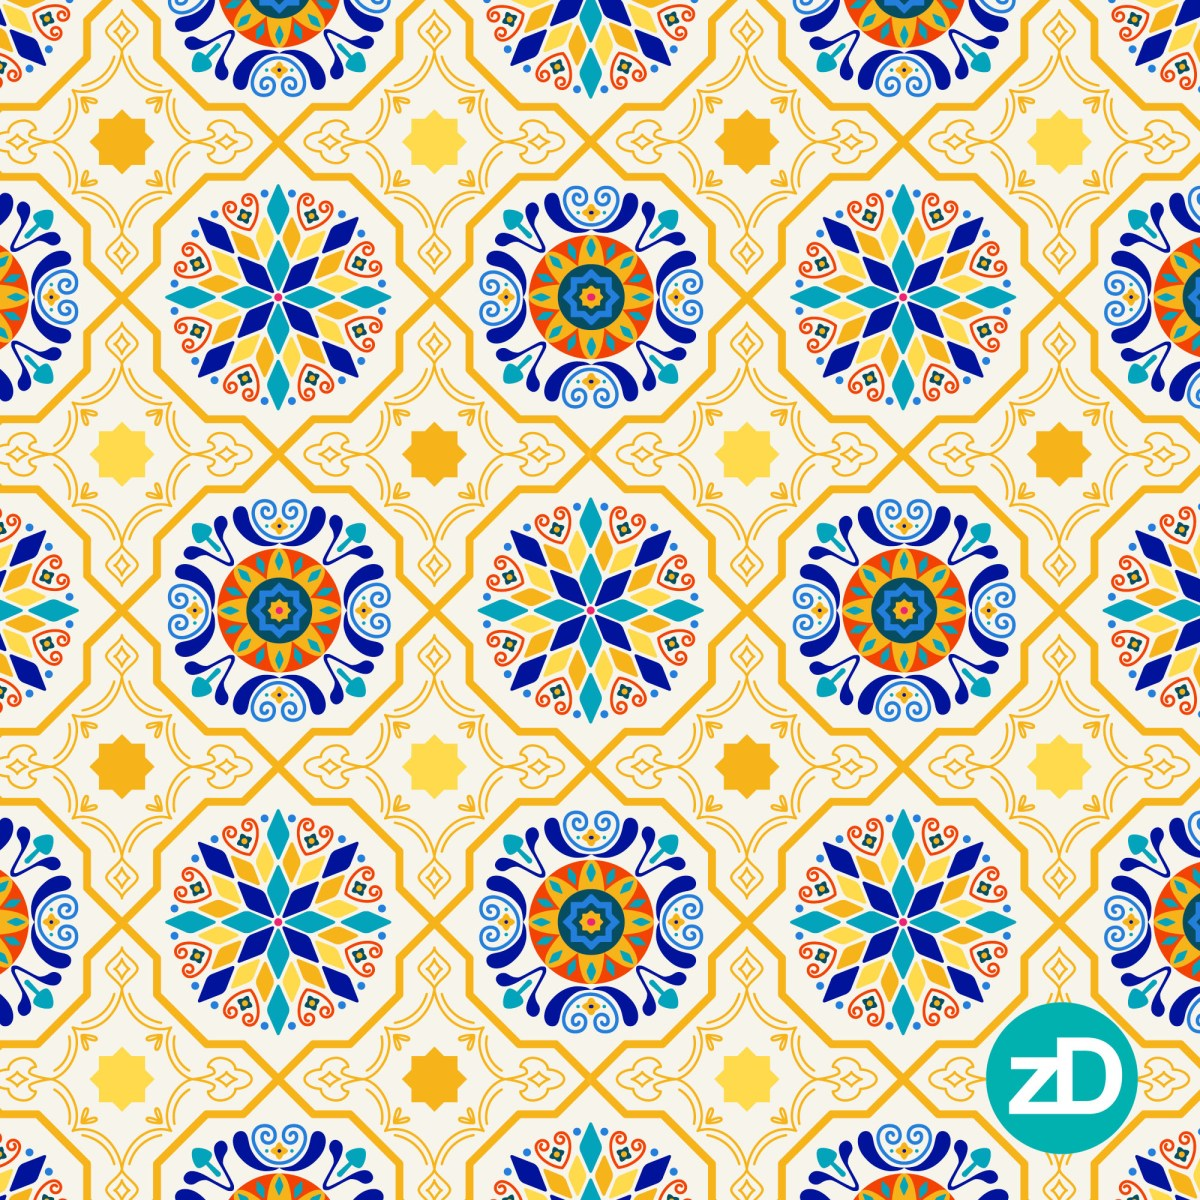 Zirkus Design | Cheery Modern Moorish Tiles Fabric Design - Spoonflower Challenge Final Color Palette